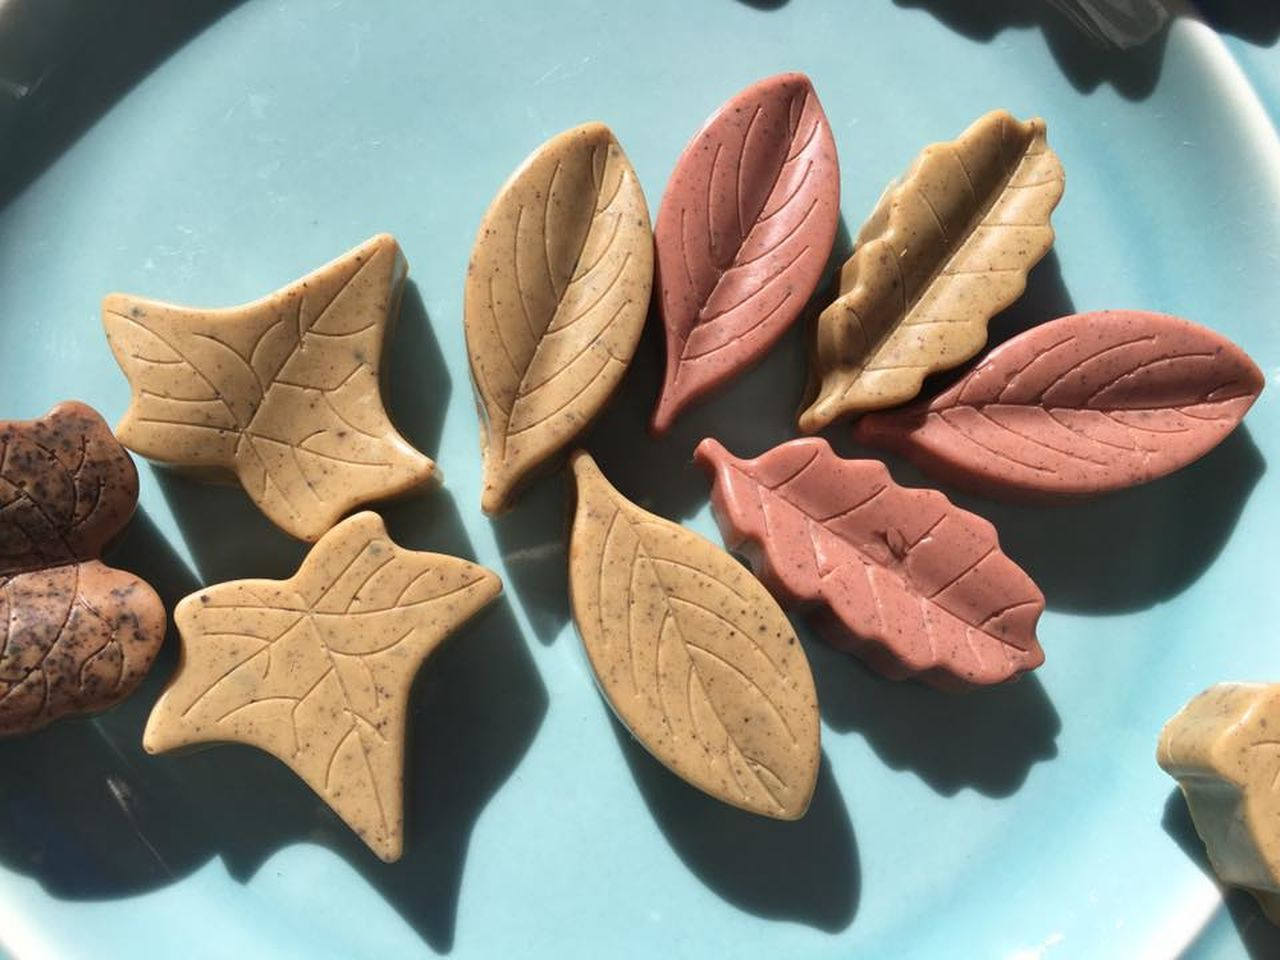 Autumn soaping Artisan Artisan, Artist, Skilled Worker; Expert, Master Autumn Autumn Colors Autumn Leaves Close-up Colors Colors Of Autumn Day Handmade Homemade Light And Shadow Soap Still Life